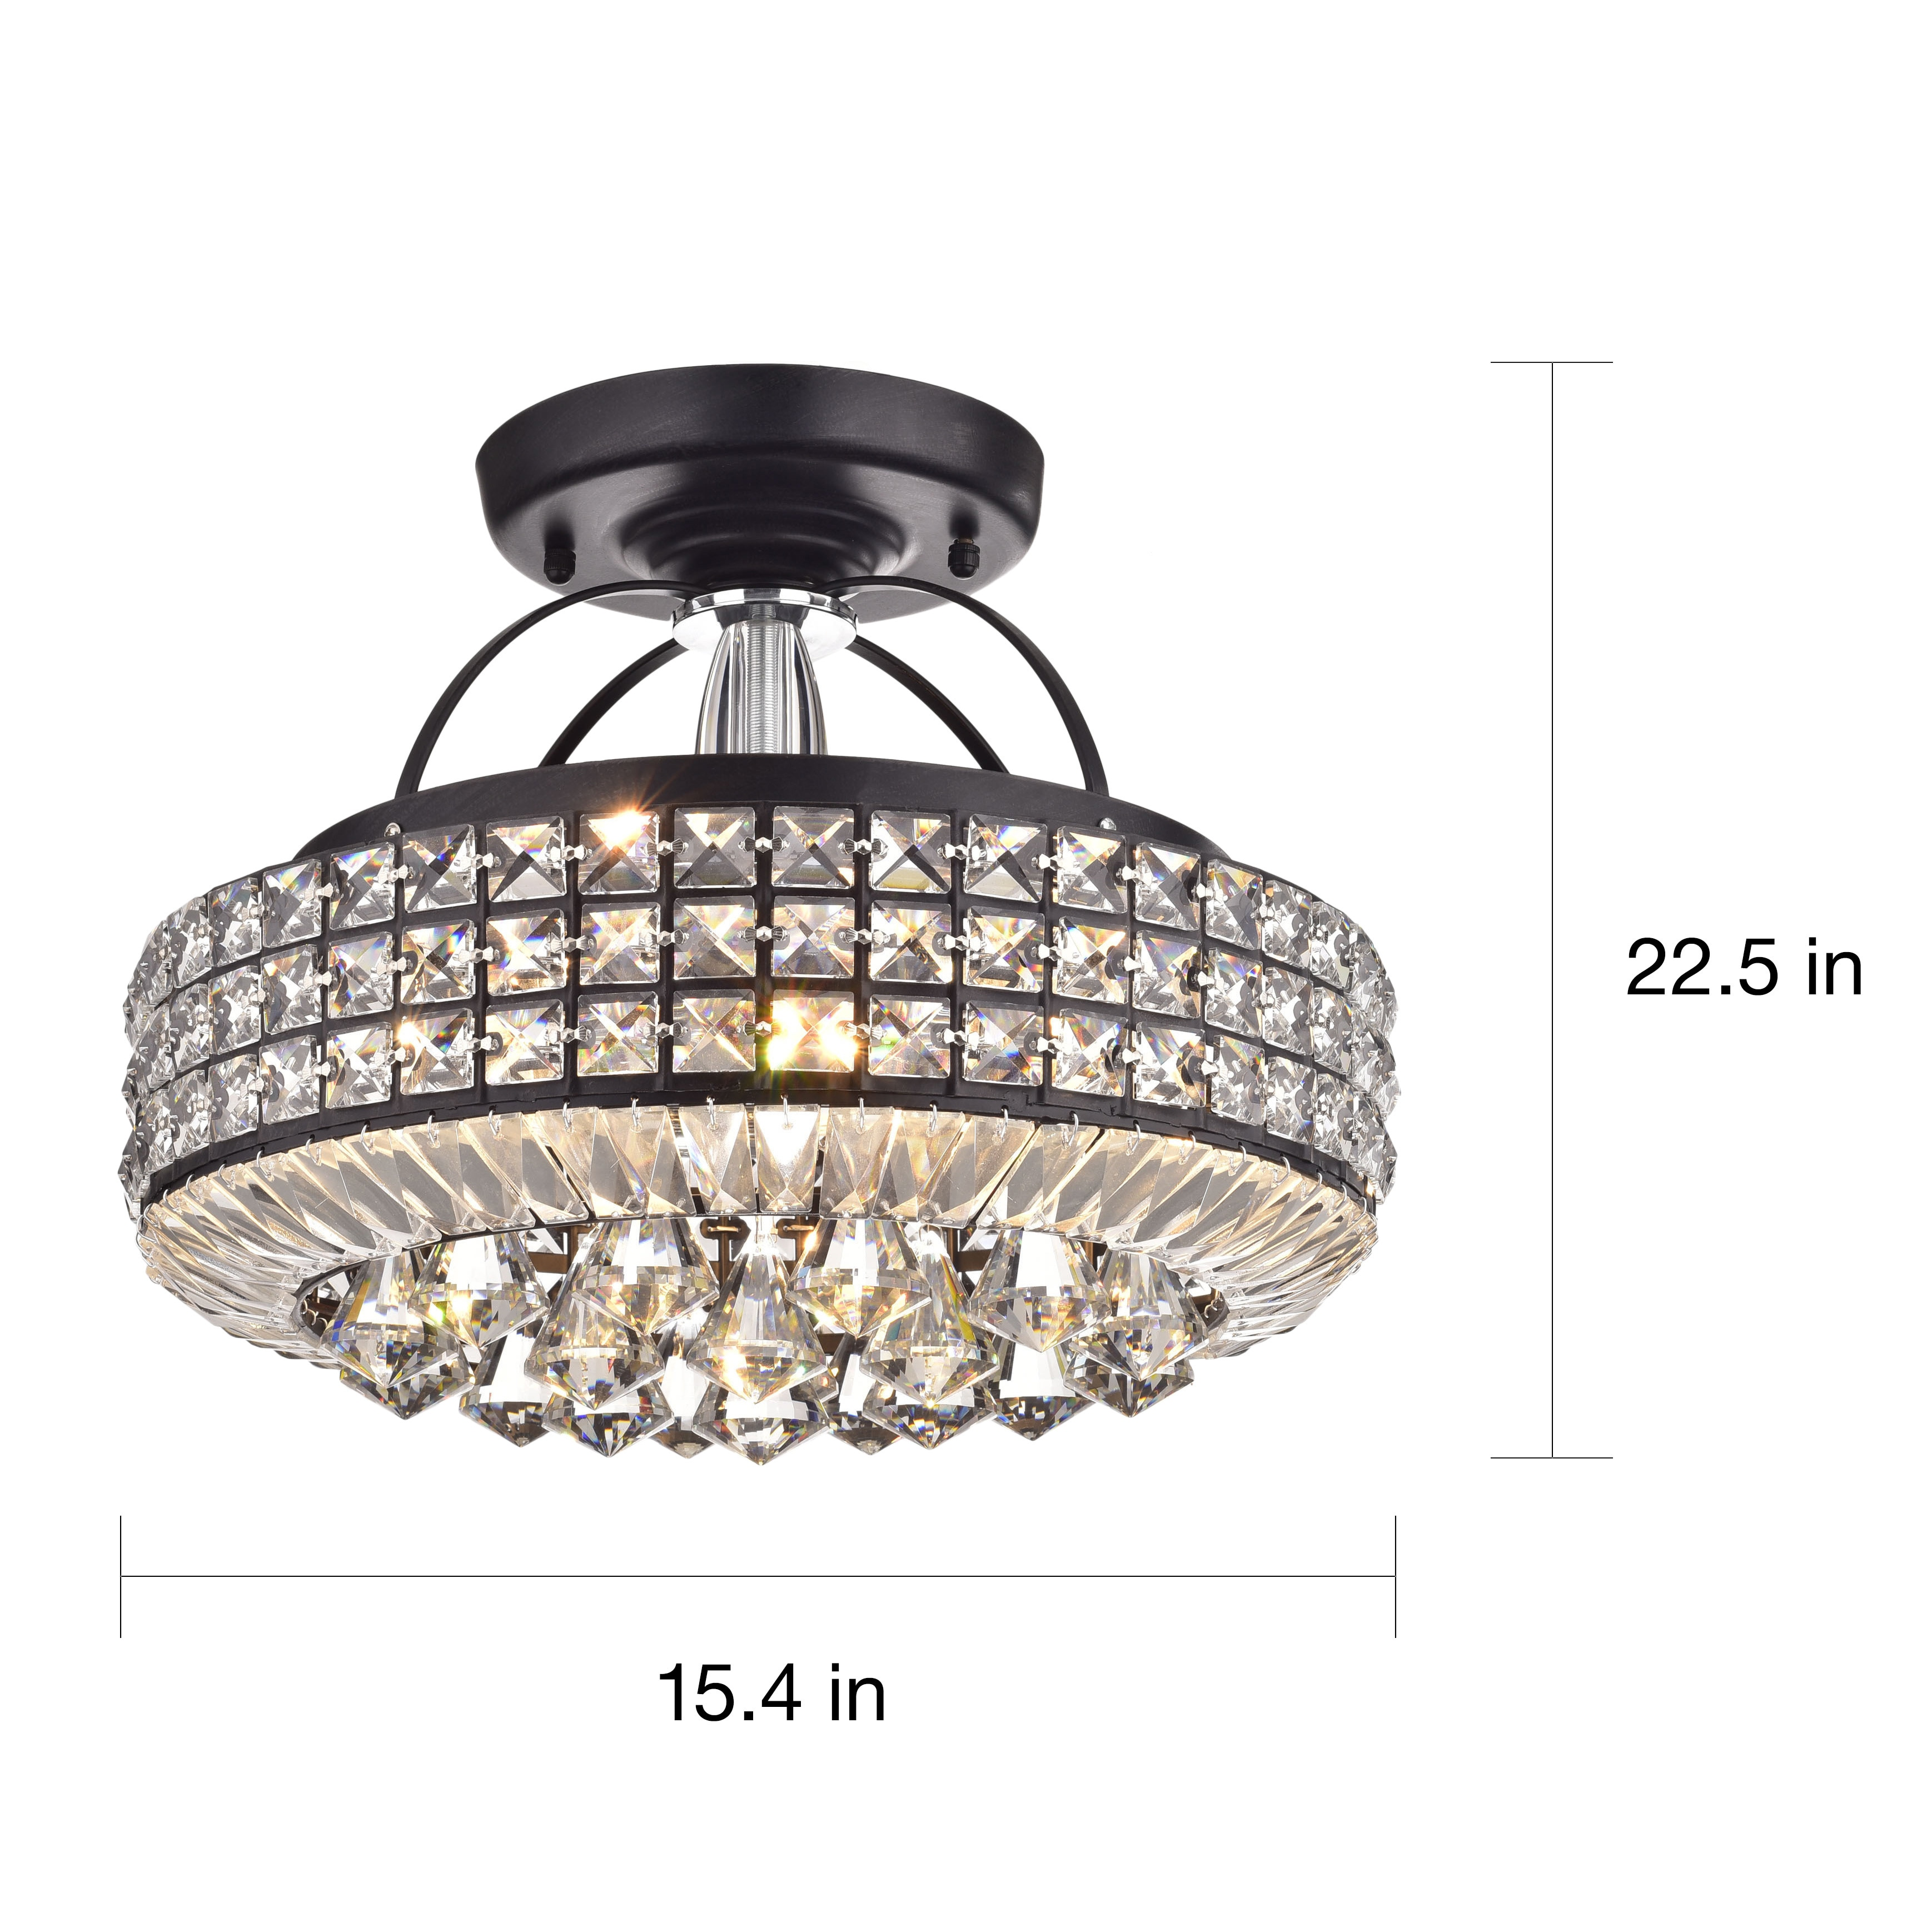 Jolie antique black drum shade crystal semi flush mount chandelier jolie antique black drum shade crystal semi flush mount chandelier free shipping today overstock 17762685 arubaitofo Image collections